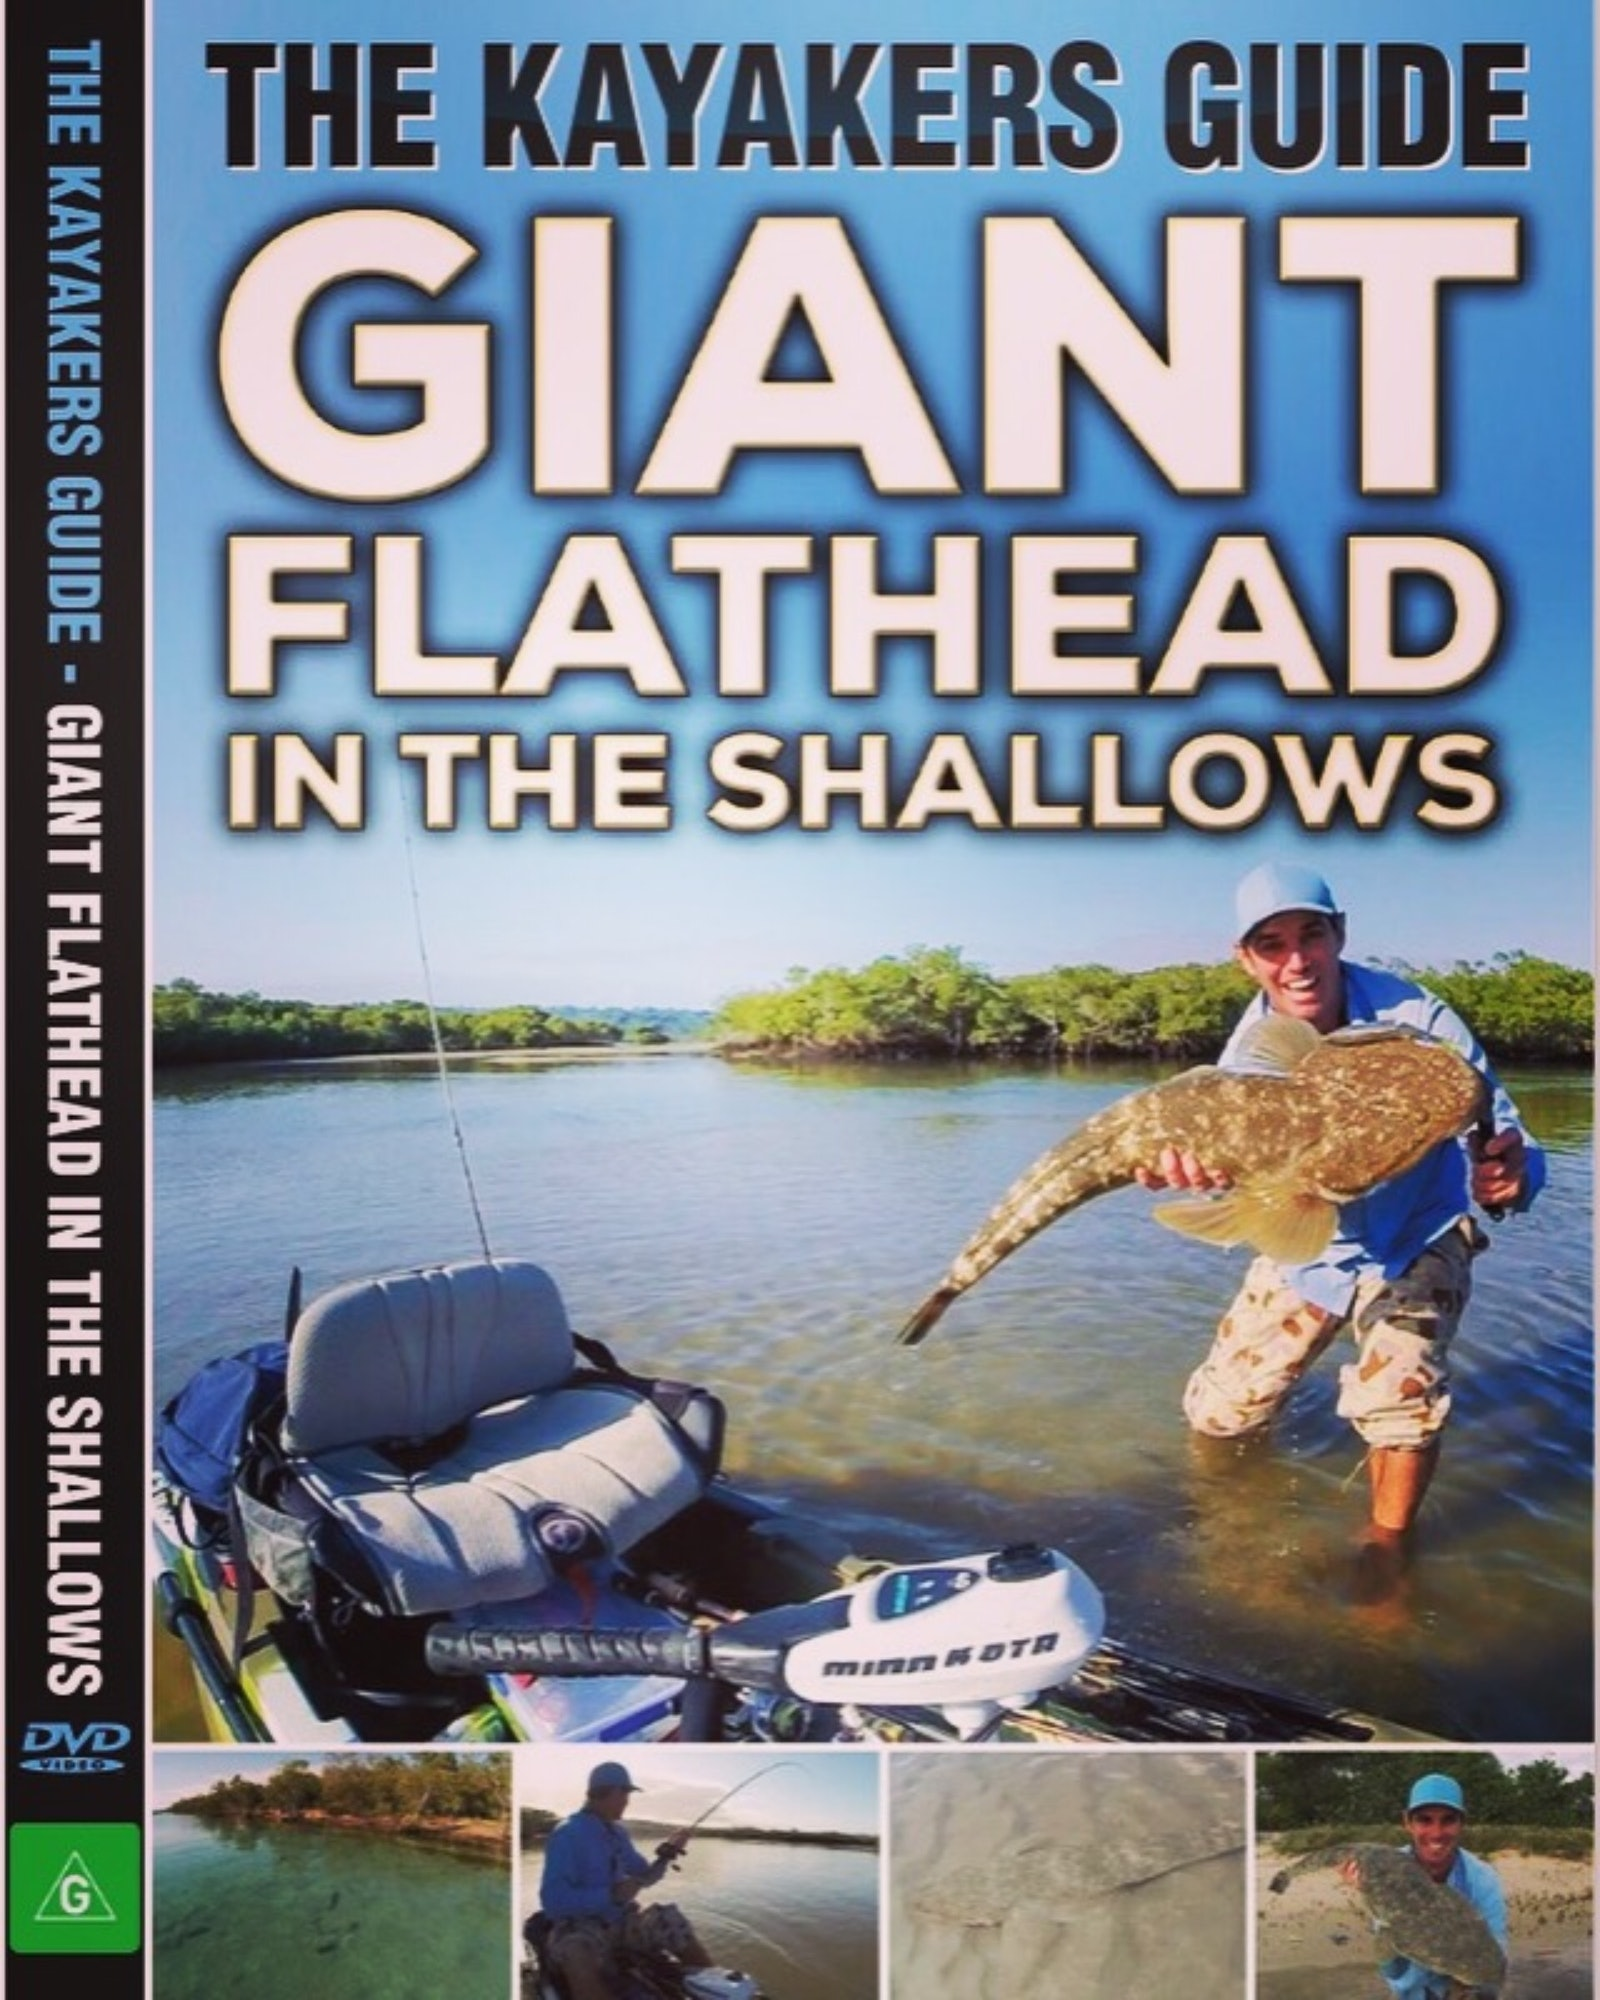 The Kayakers Guide - Giant Flathead in The Shallows DVD - John Costello